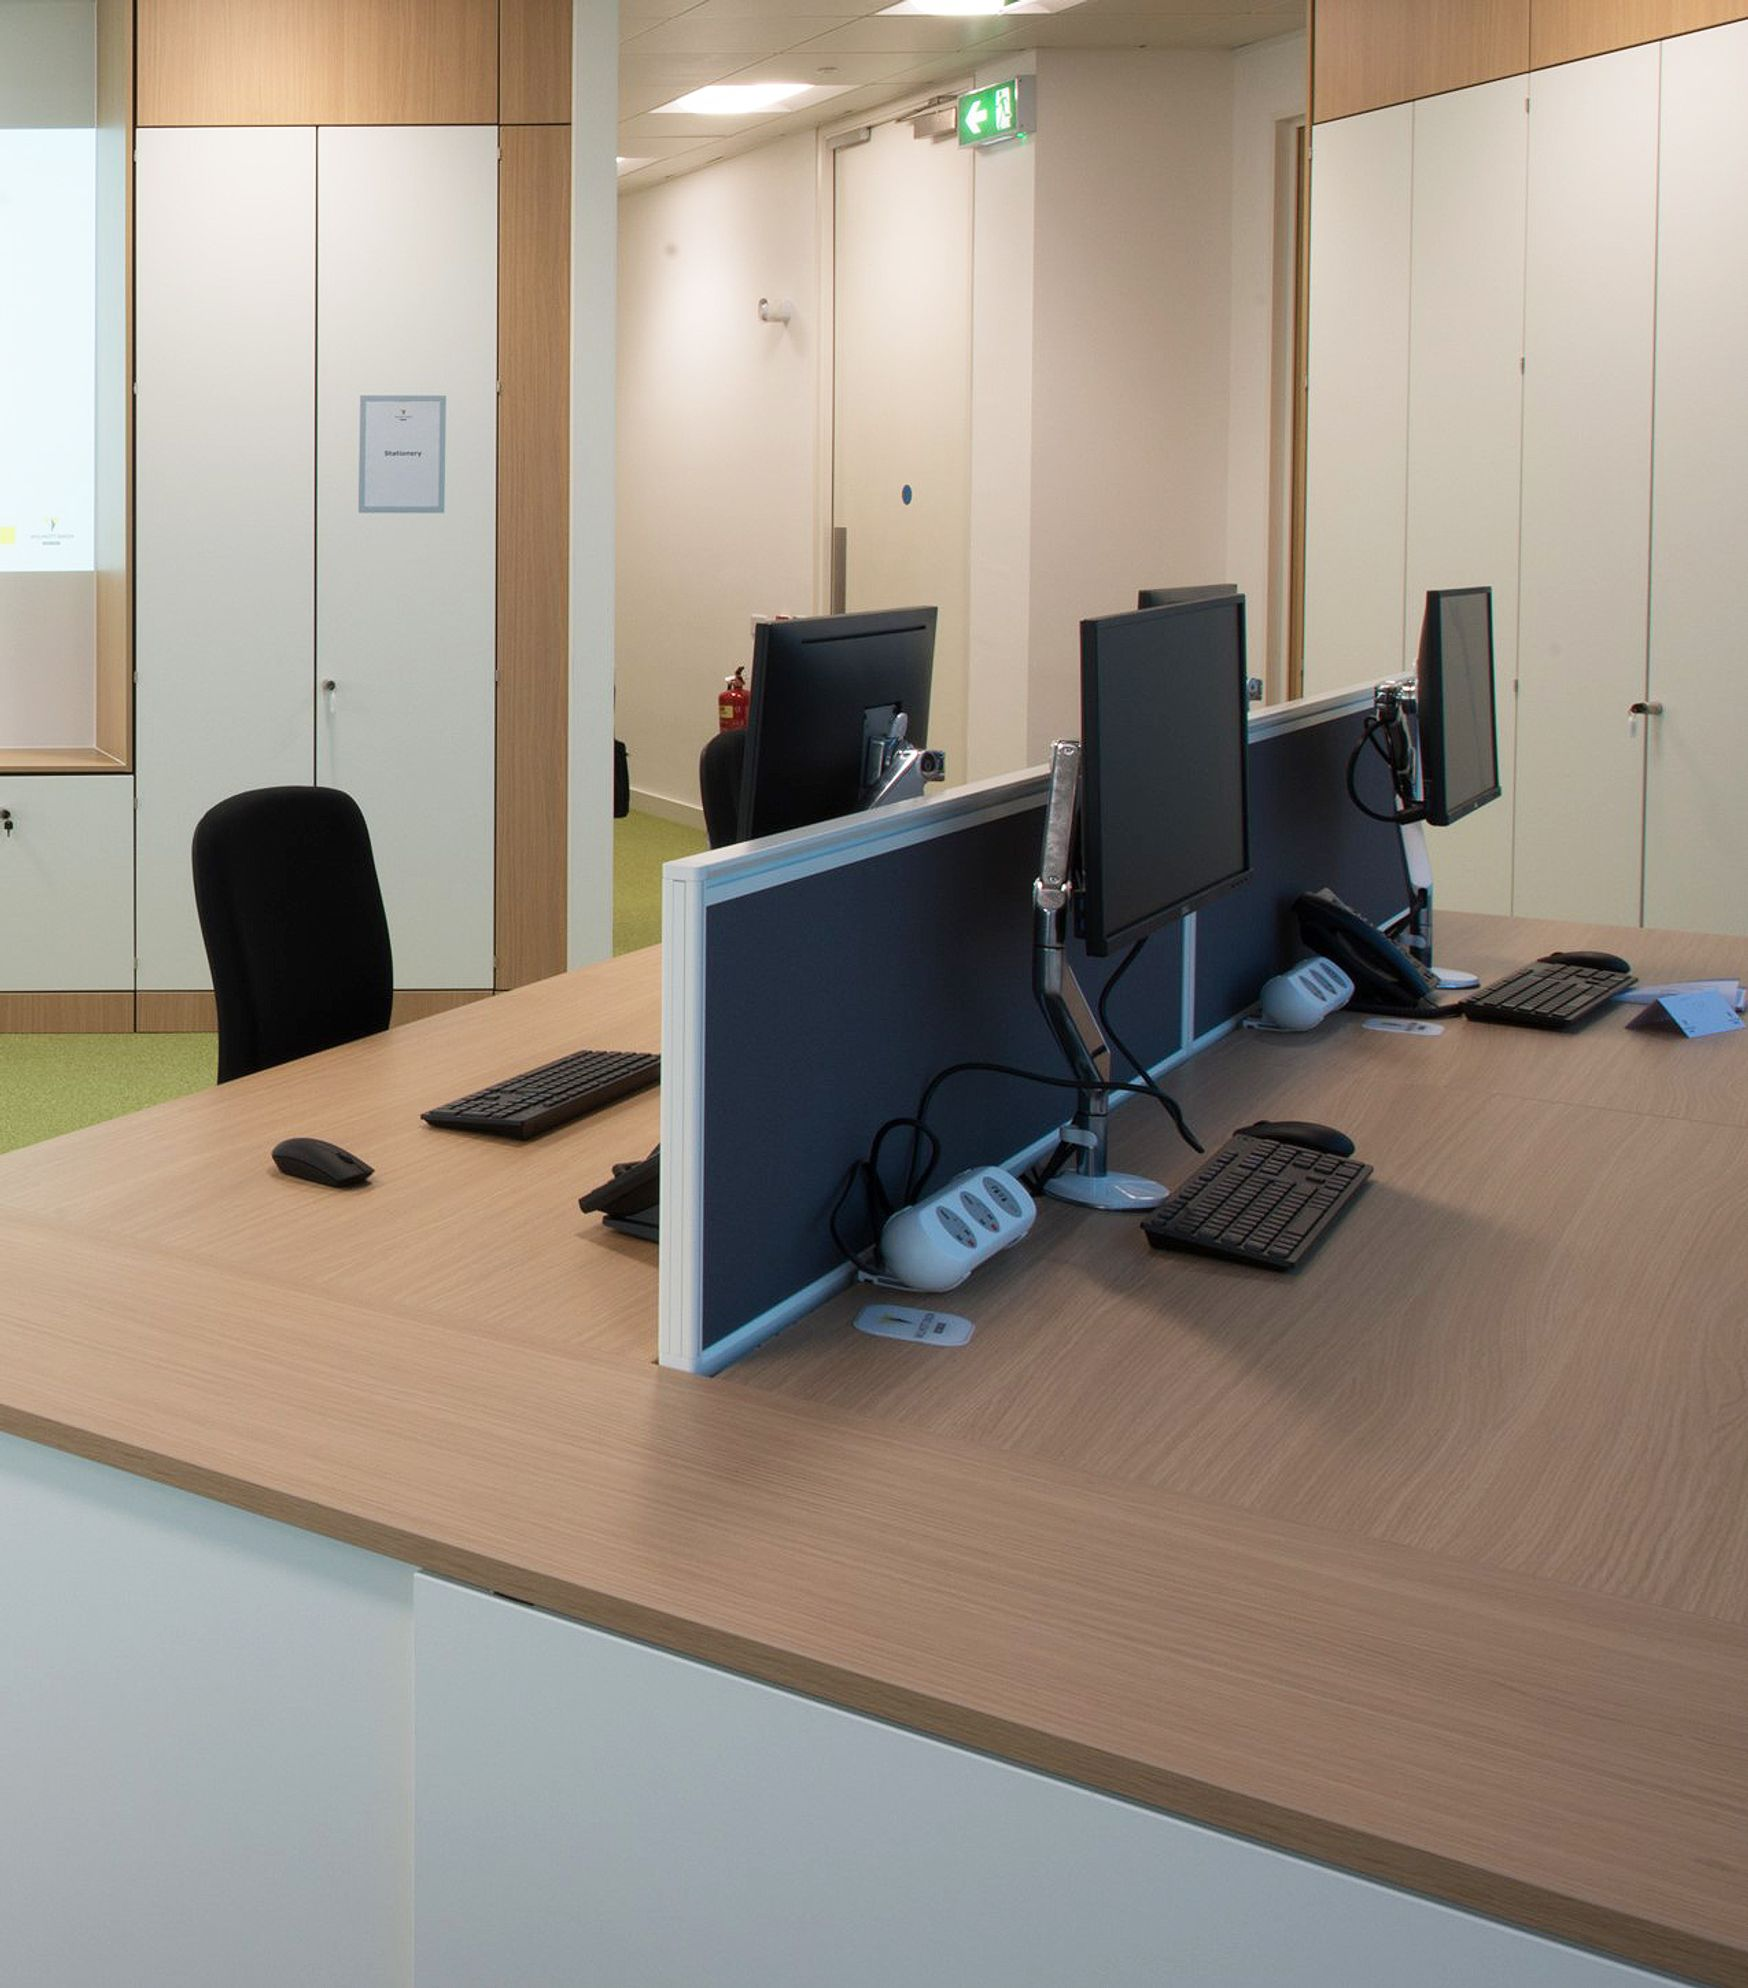 Used Humanscale 'M2' single monitor arms